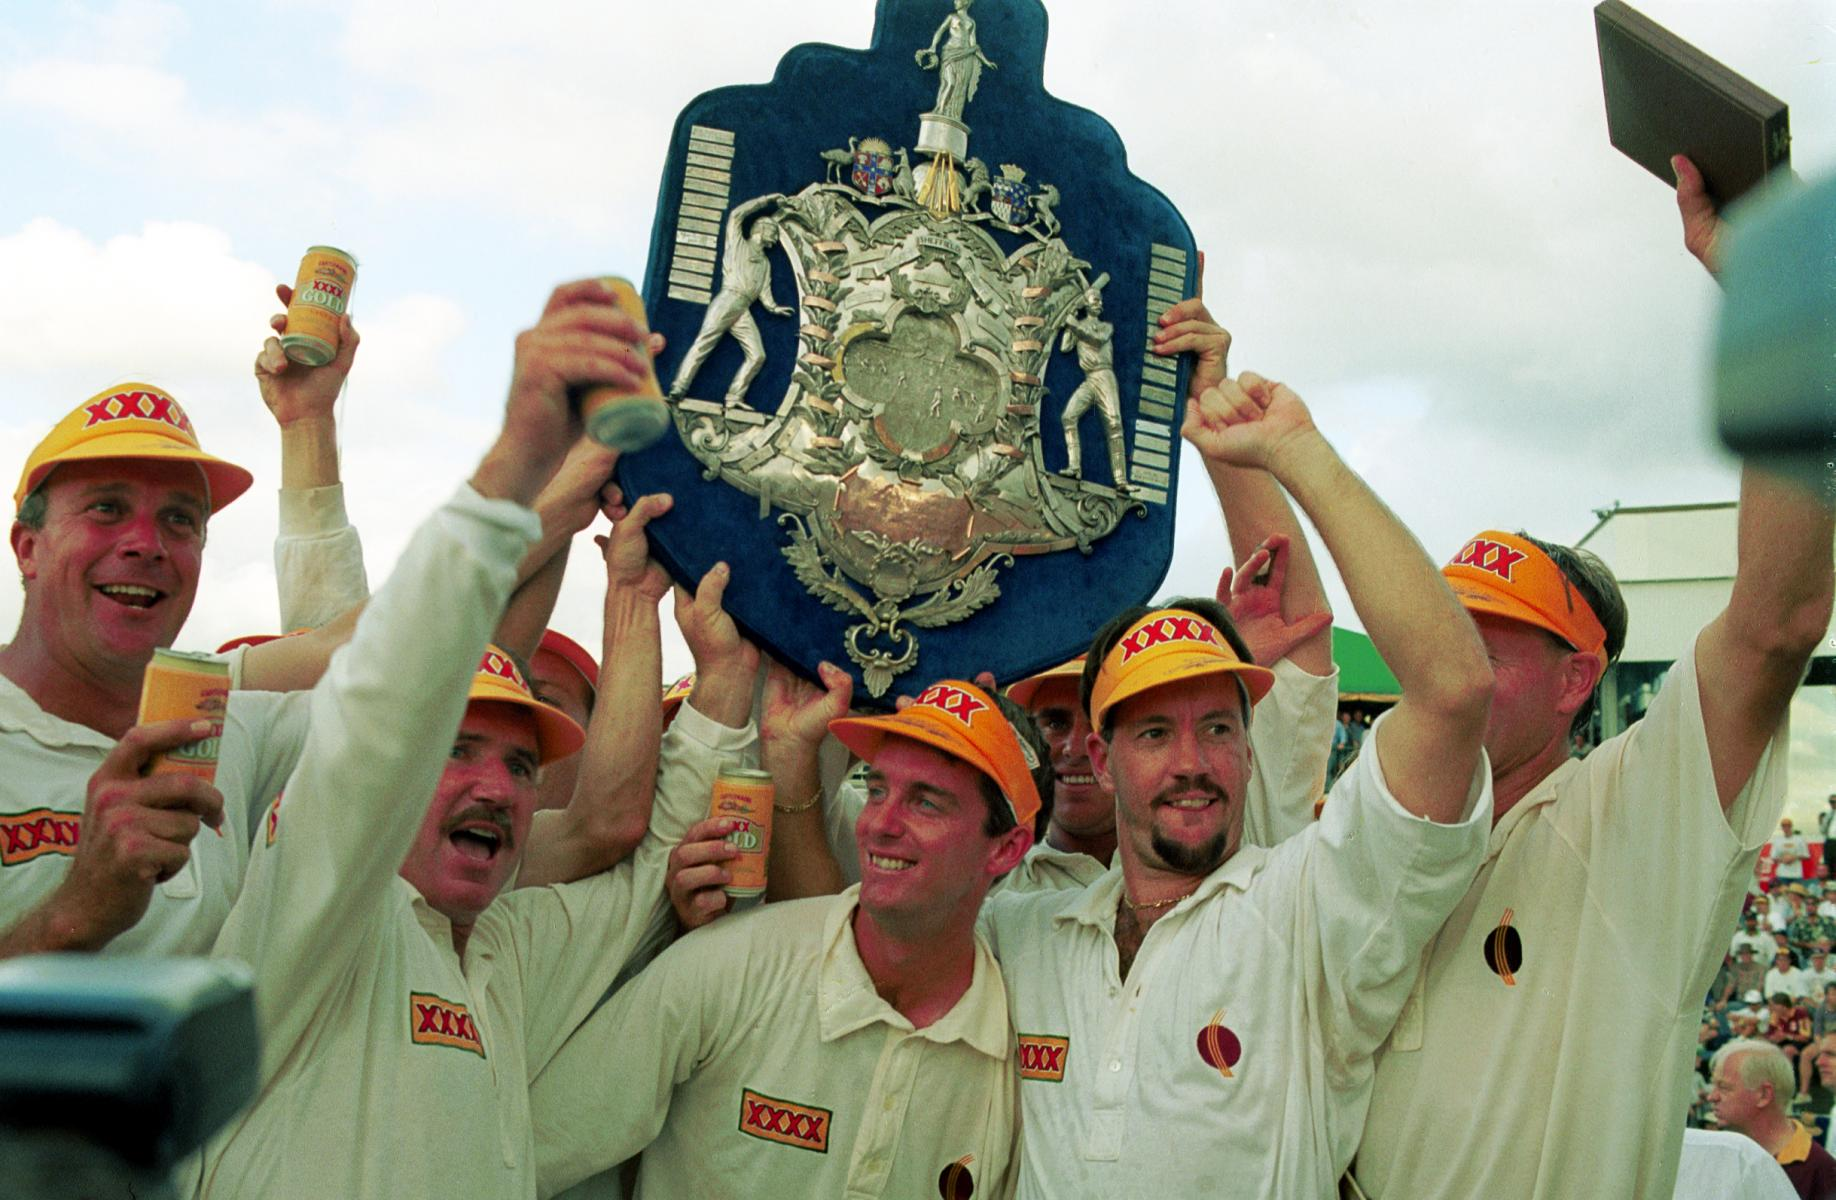 Sheffield Shield final  - The Gabba